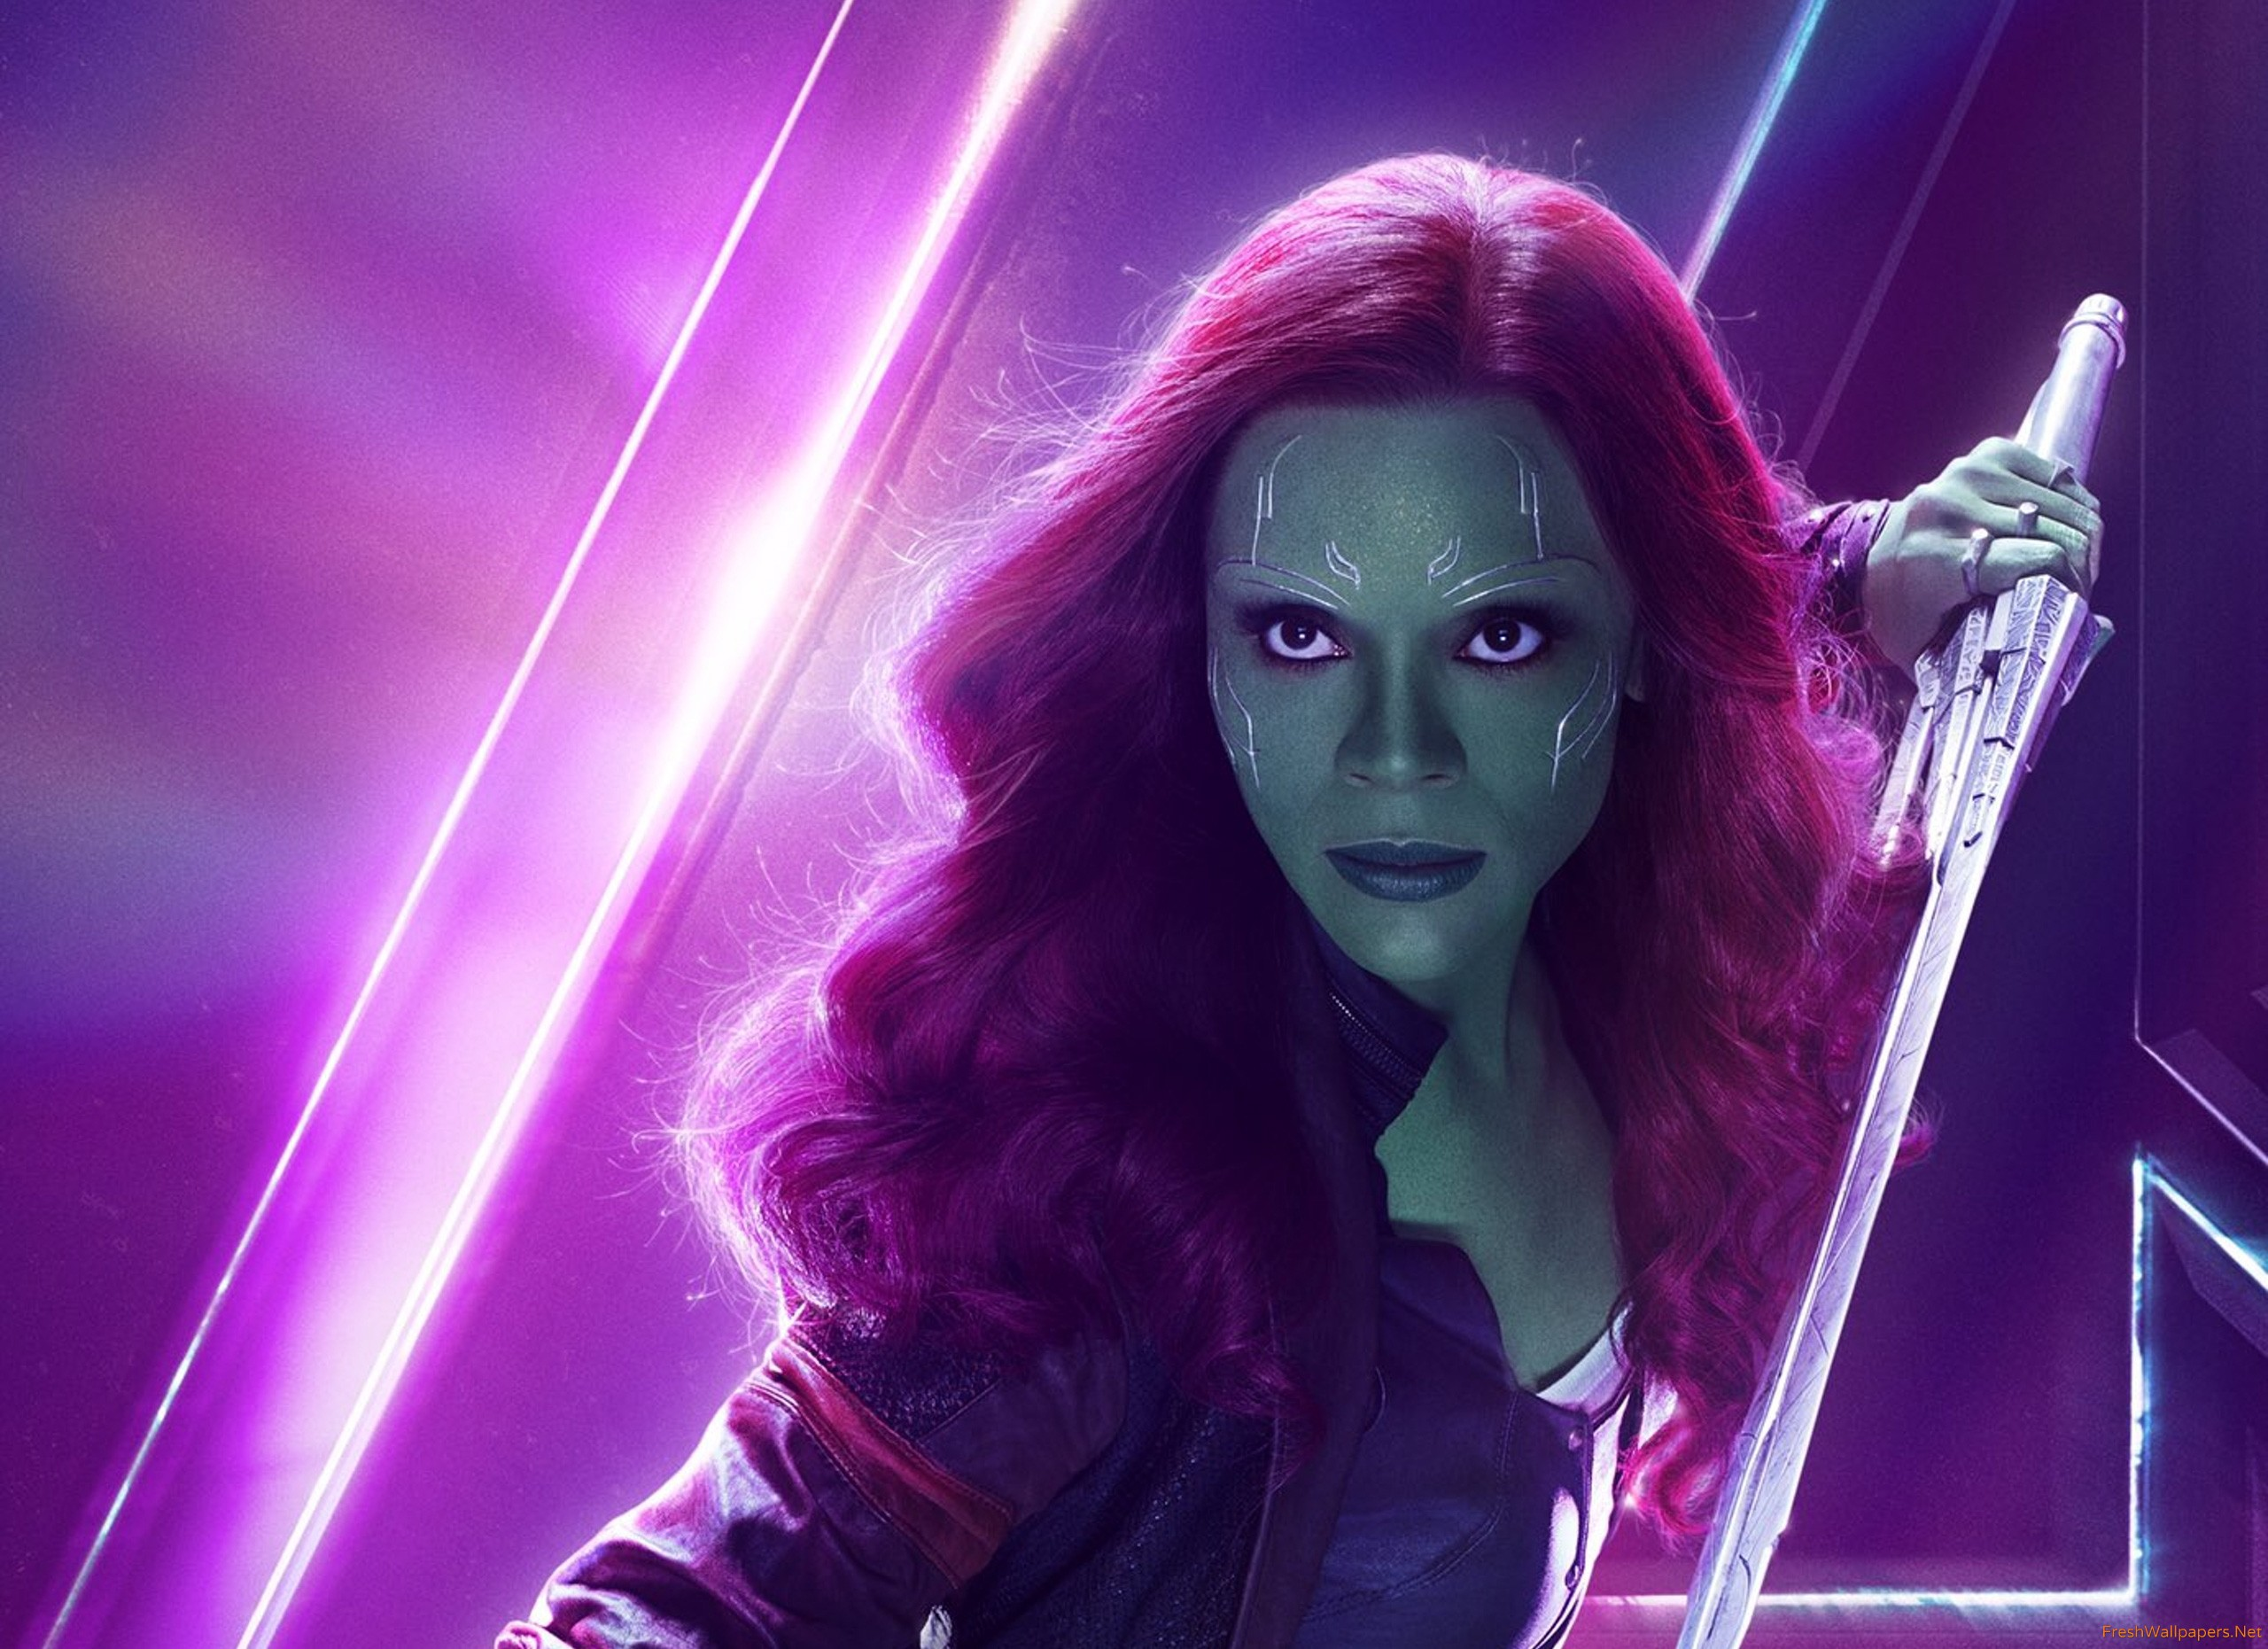 Gamora In Avengers Infinity War New Poster wallpaper